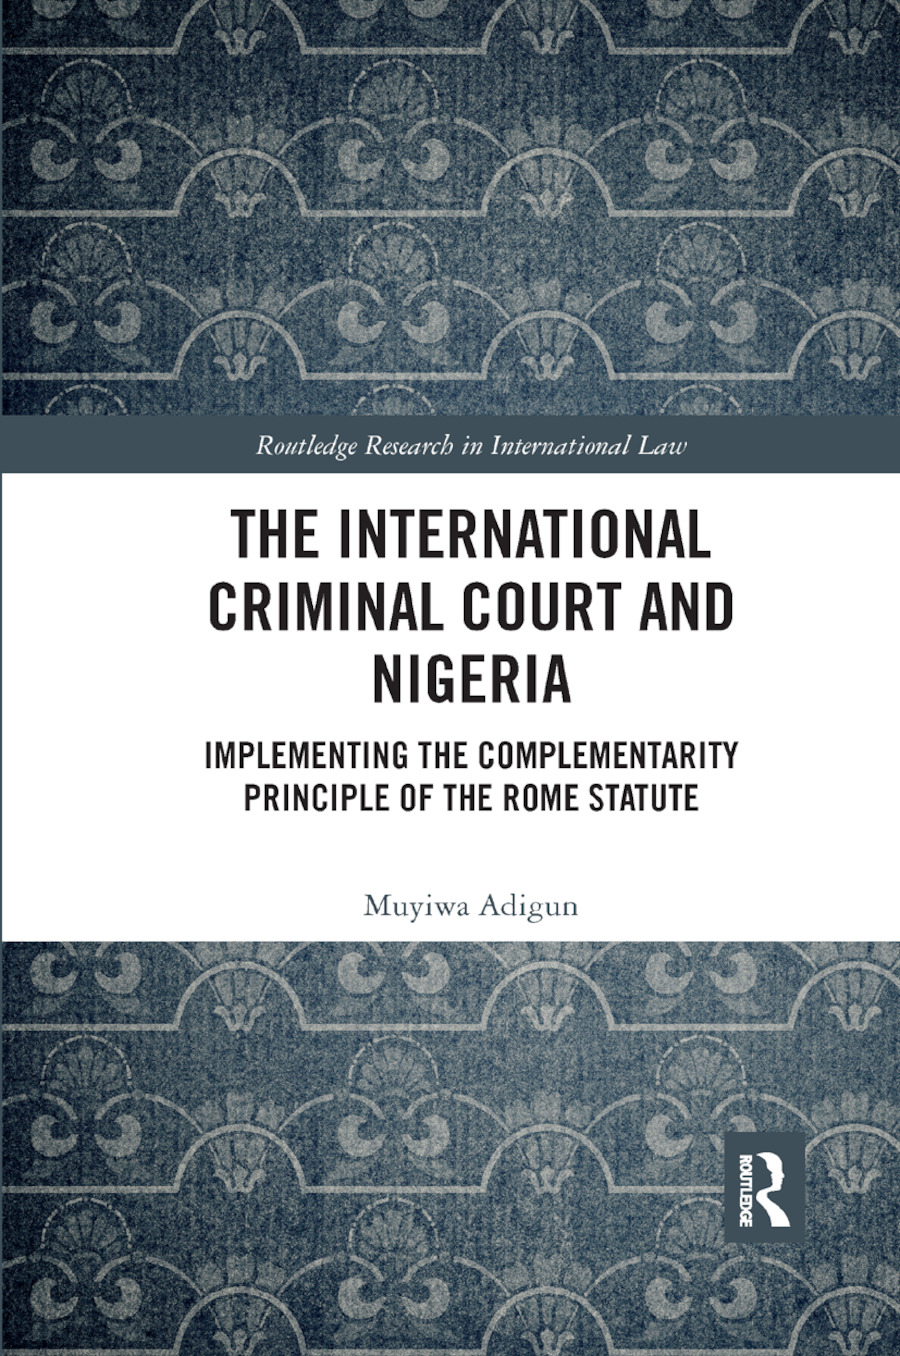 The International Criminal Court and Nigeria: Implementing the Complementarity Principle of the Rome Statute book cover